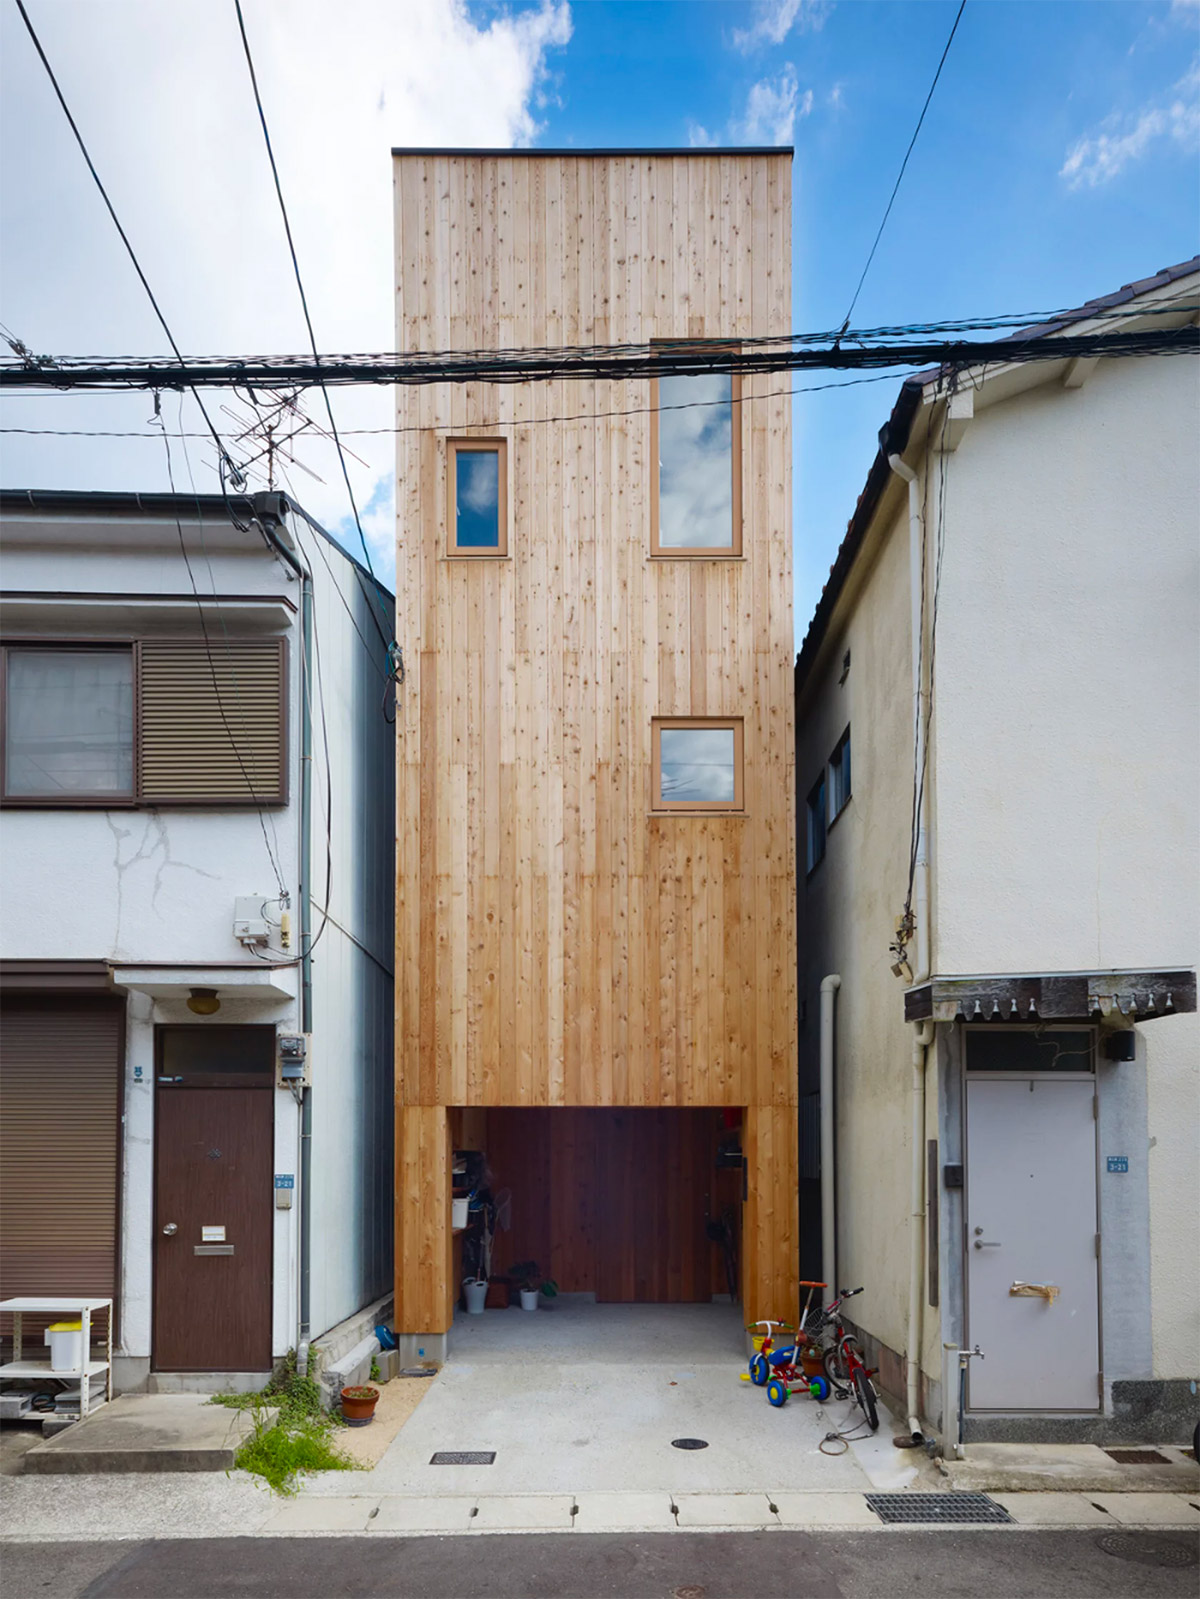 50 Narrow Lot Houses That Transform A Skinny Exterior Into Something Special images 48